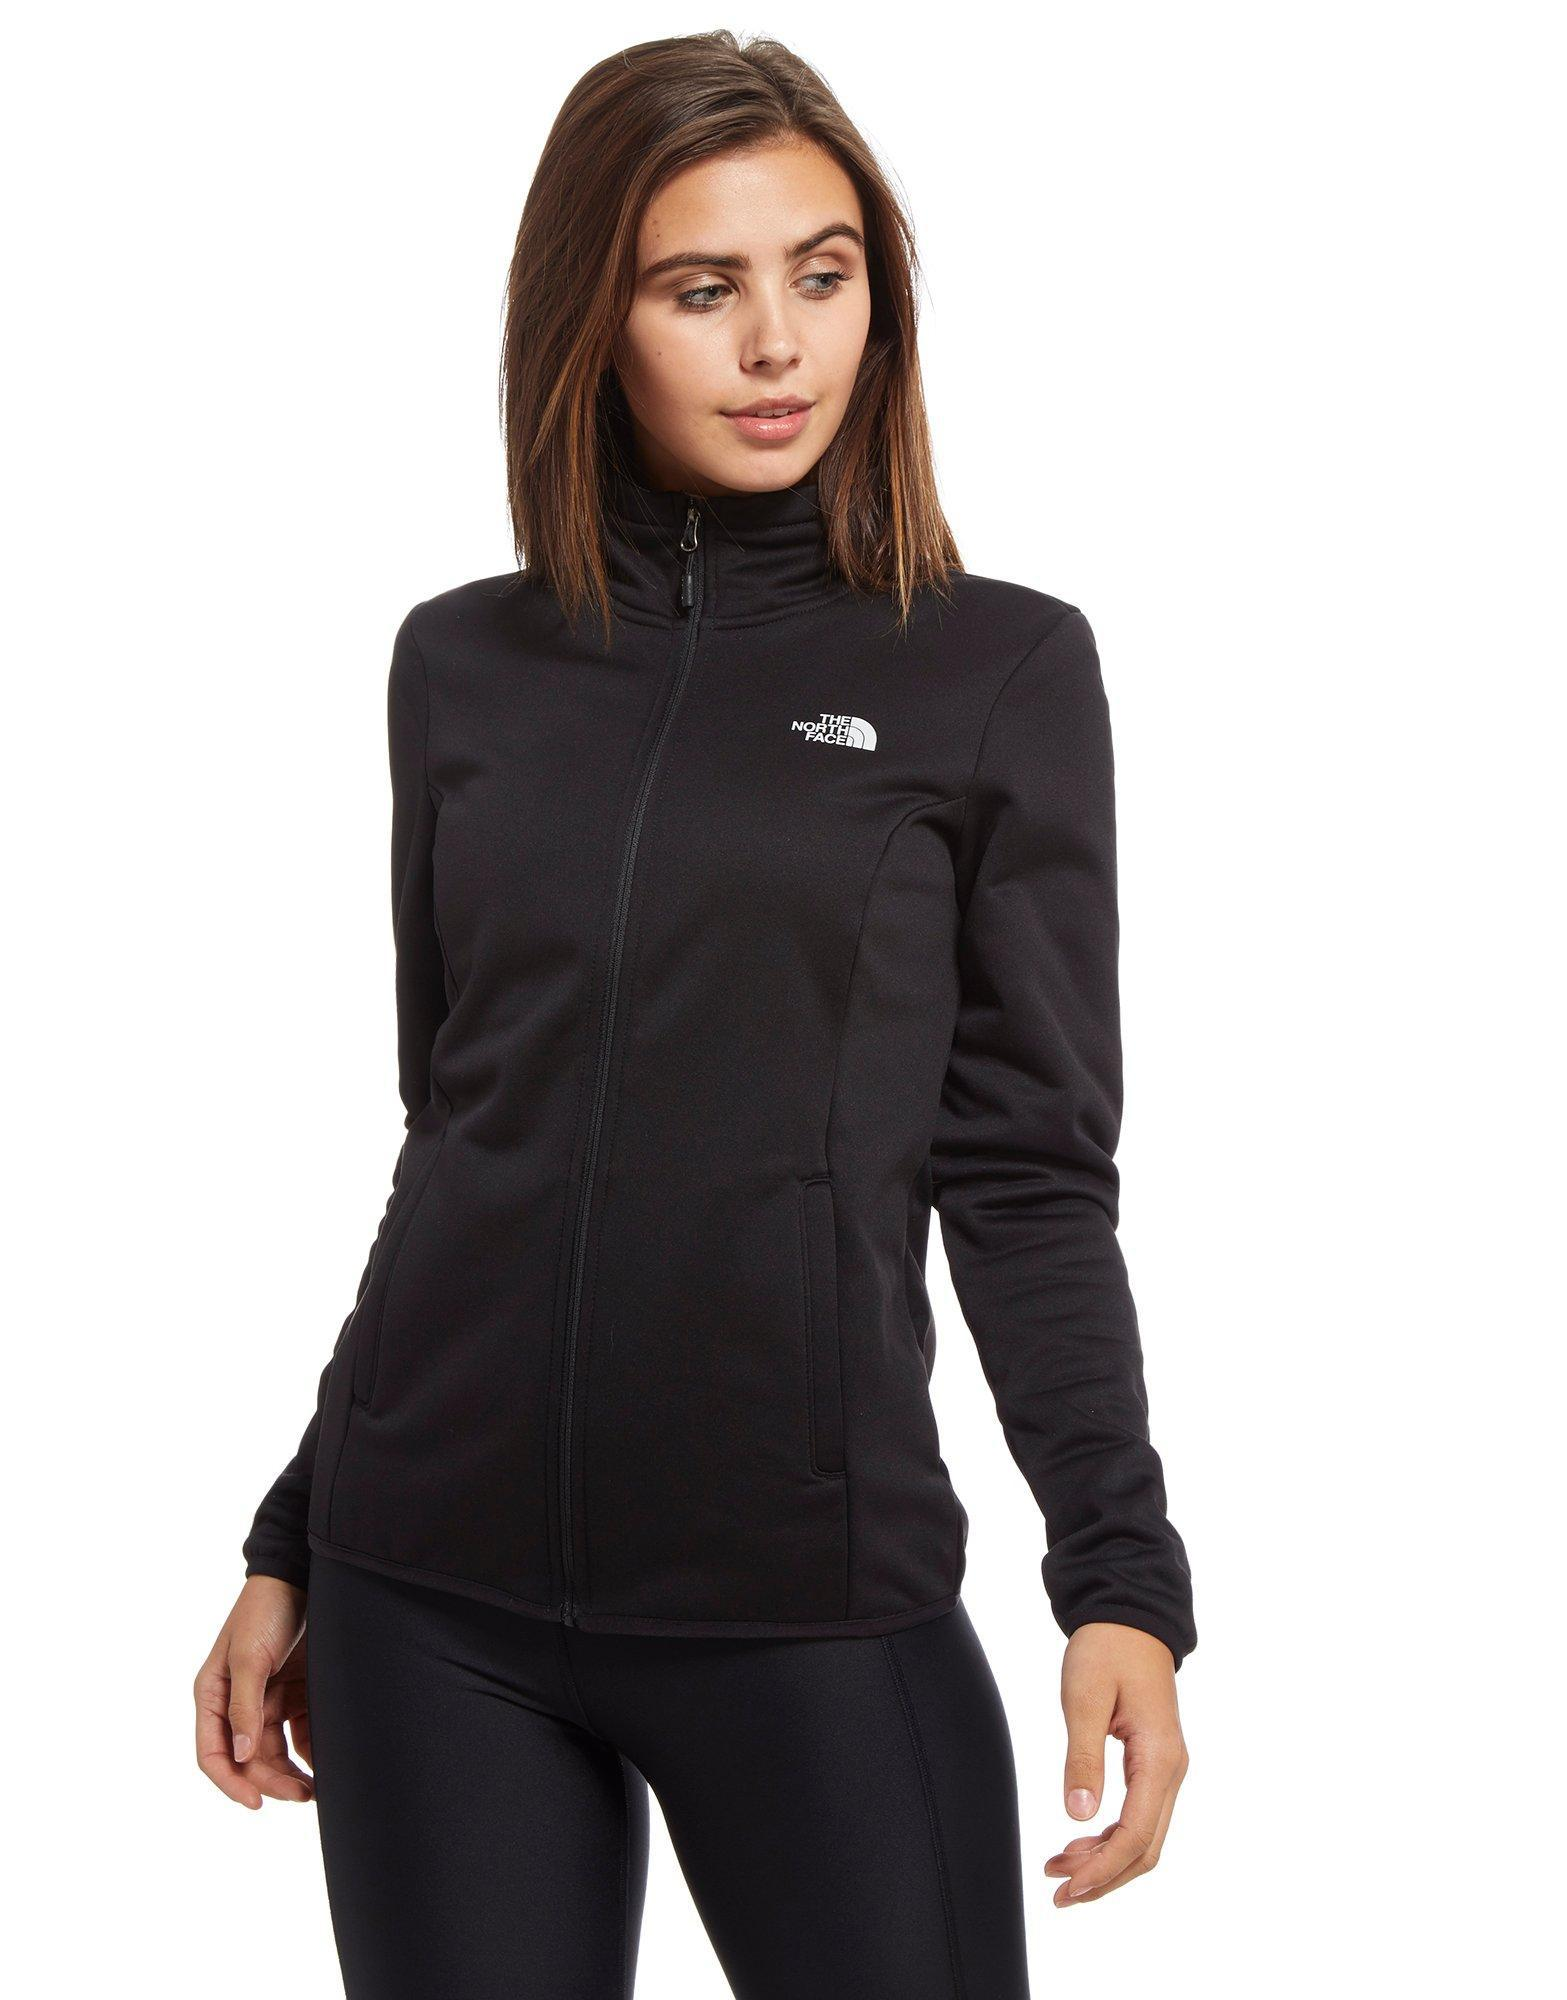 acf8edf5d3b5 Lyst - The North Face Tanken Full Zip Jacket in Black